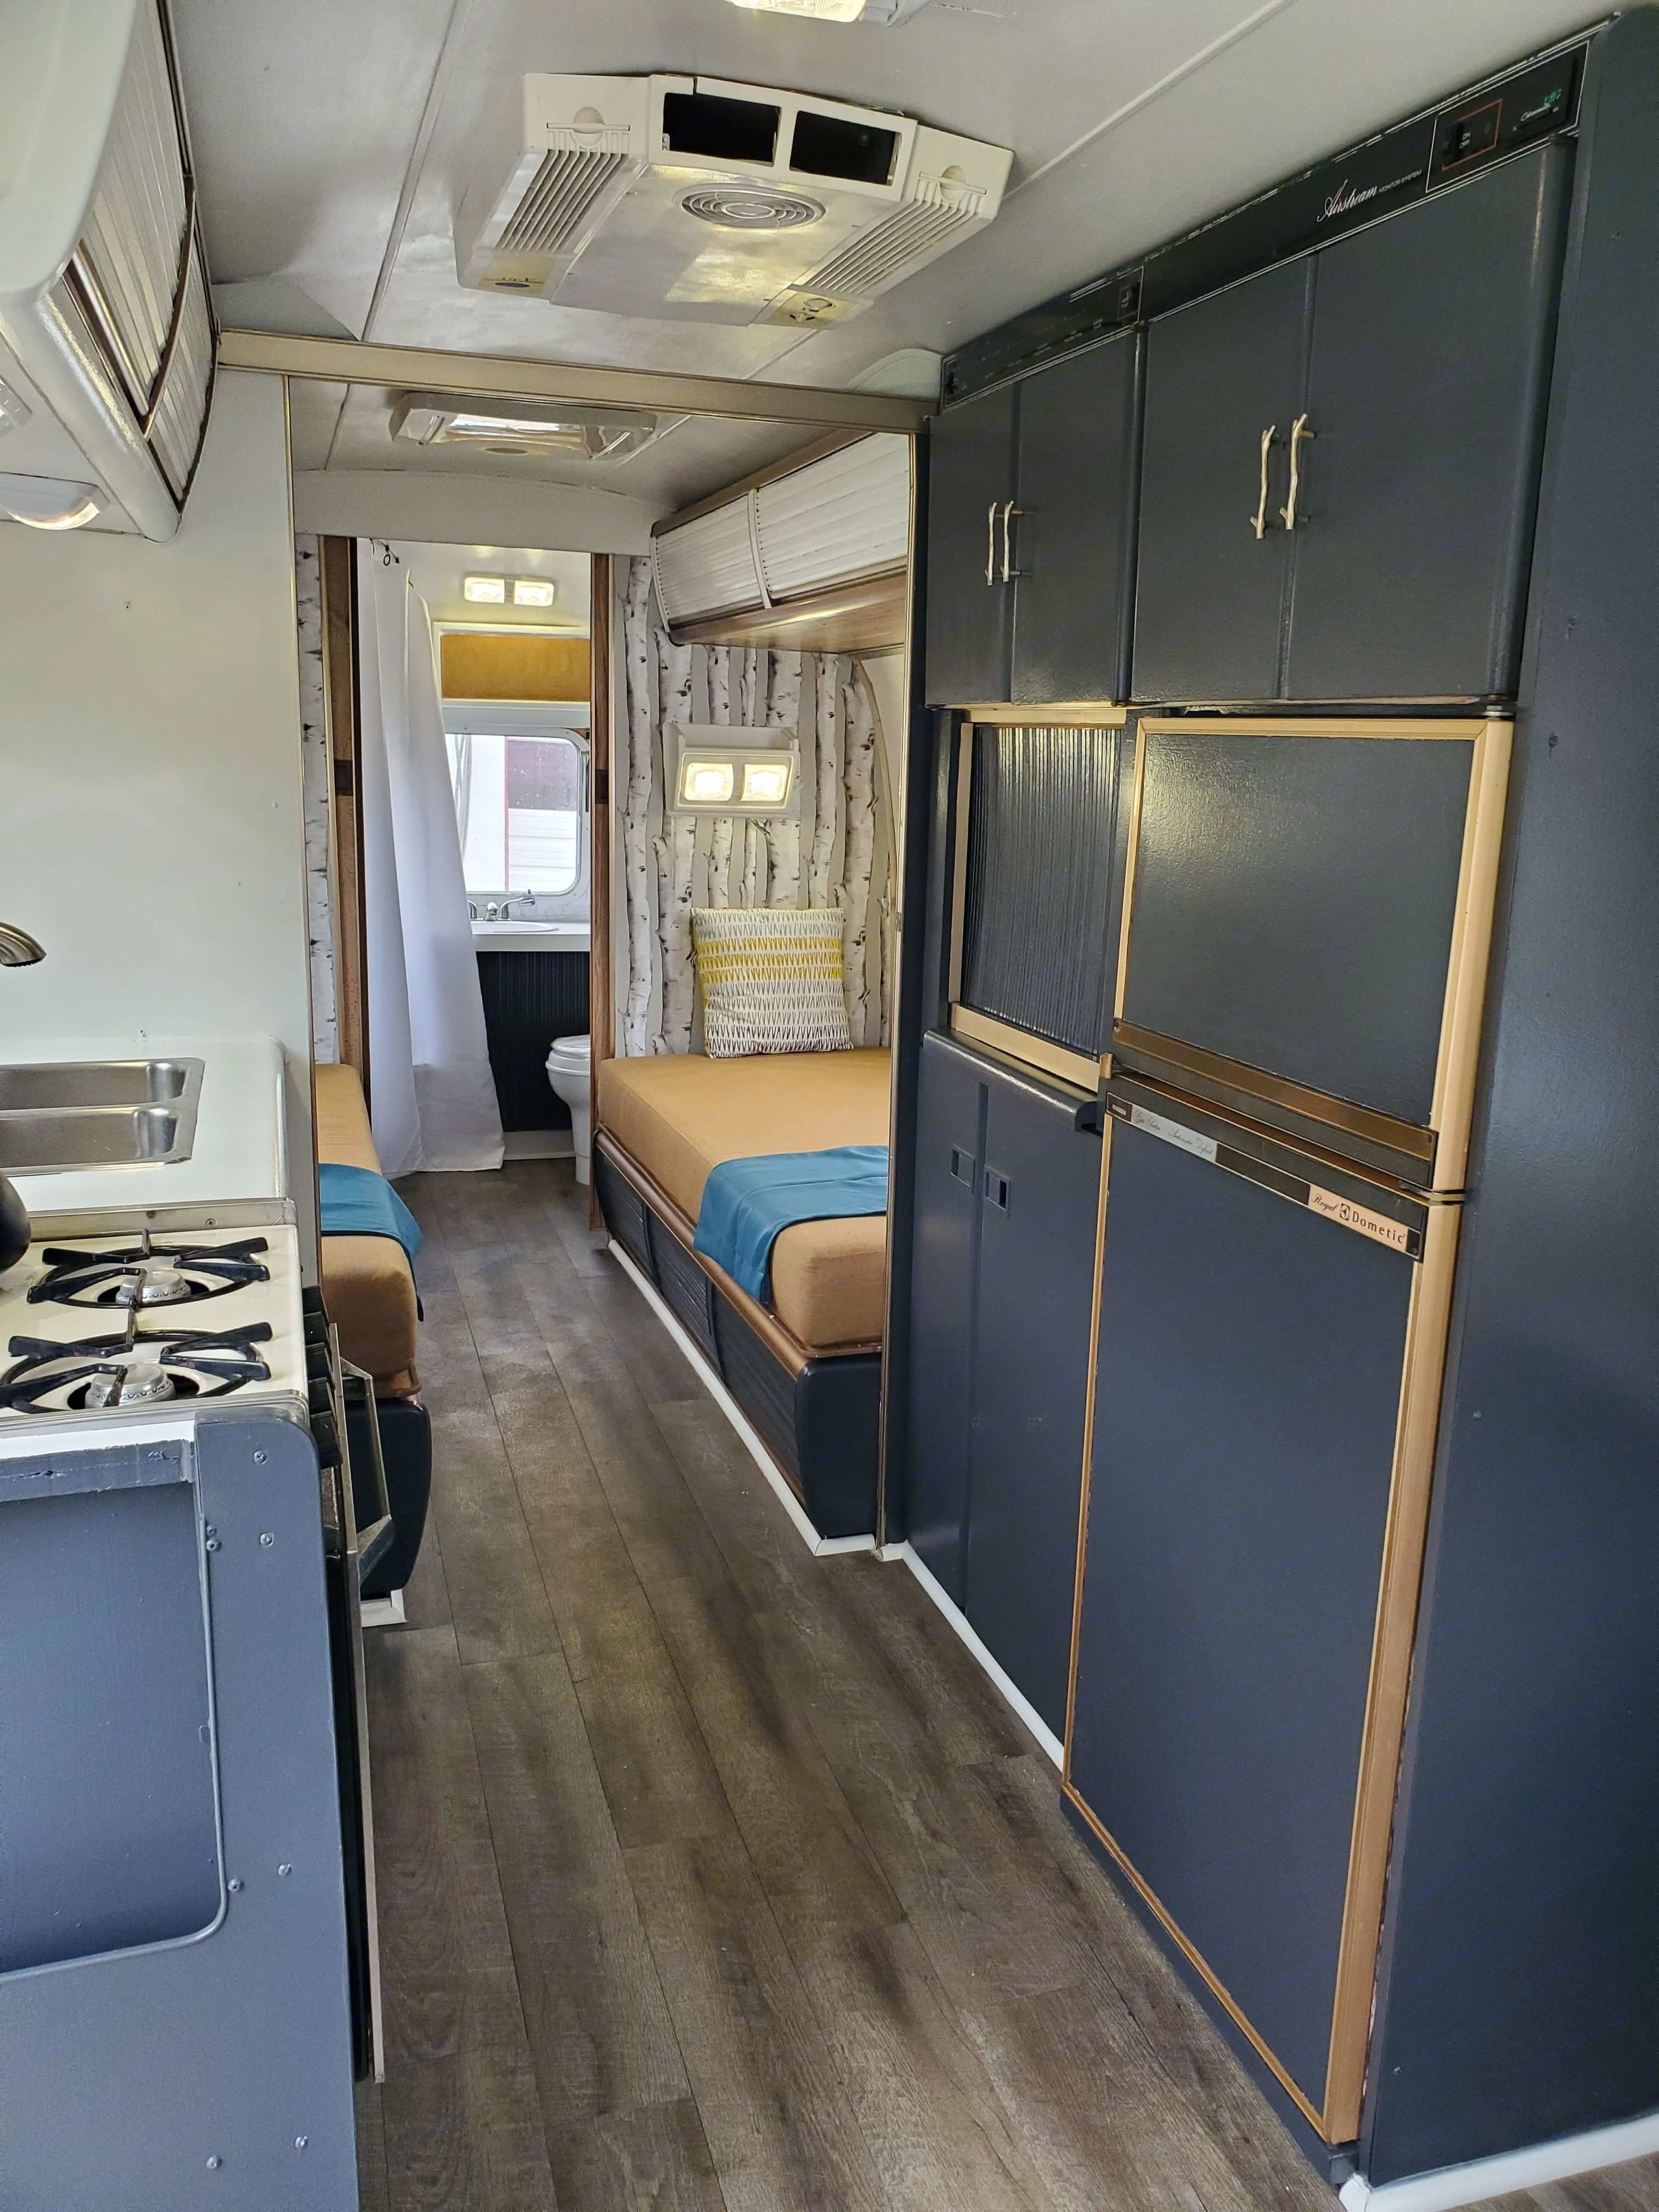 kitchen with microwave. Airstream Excella